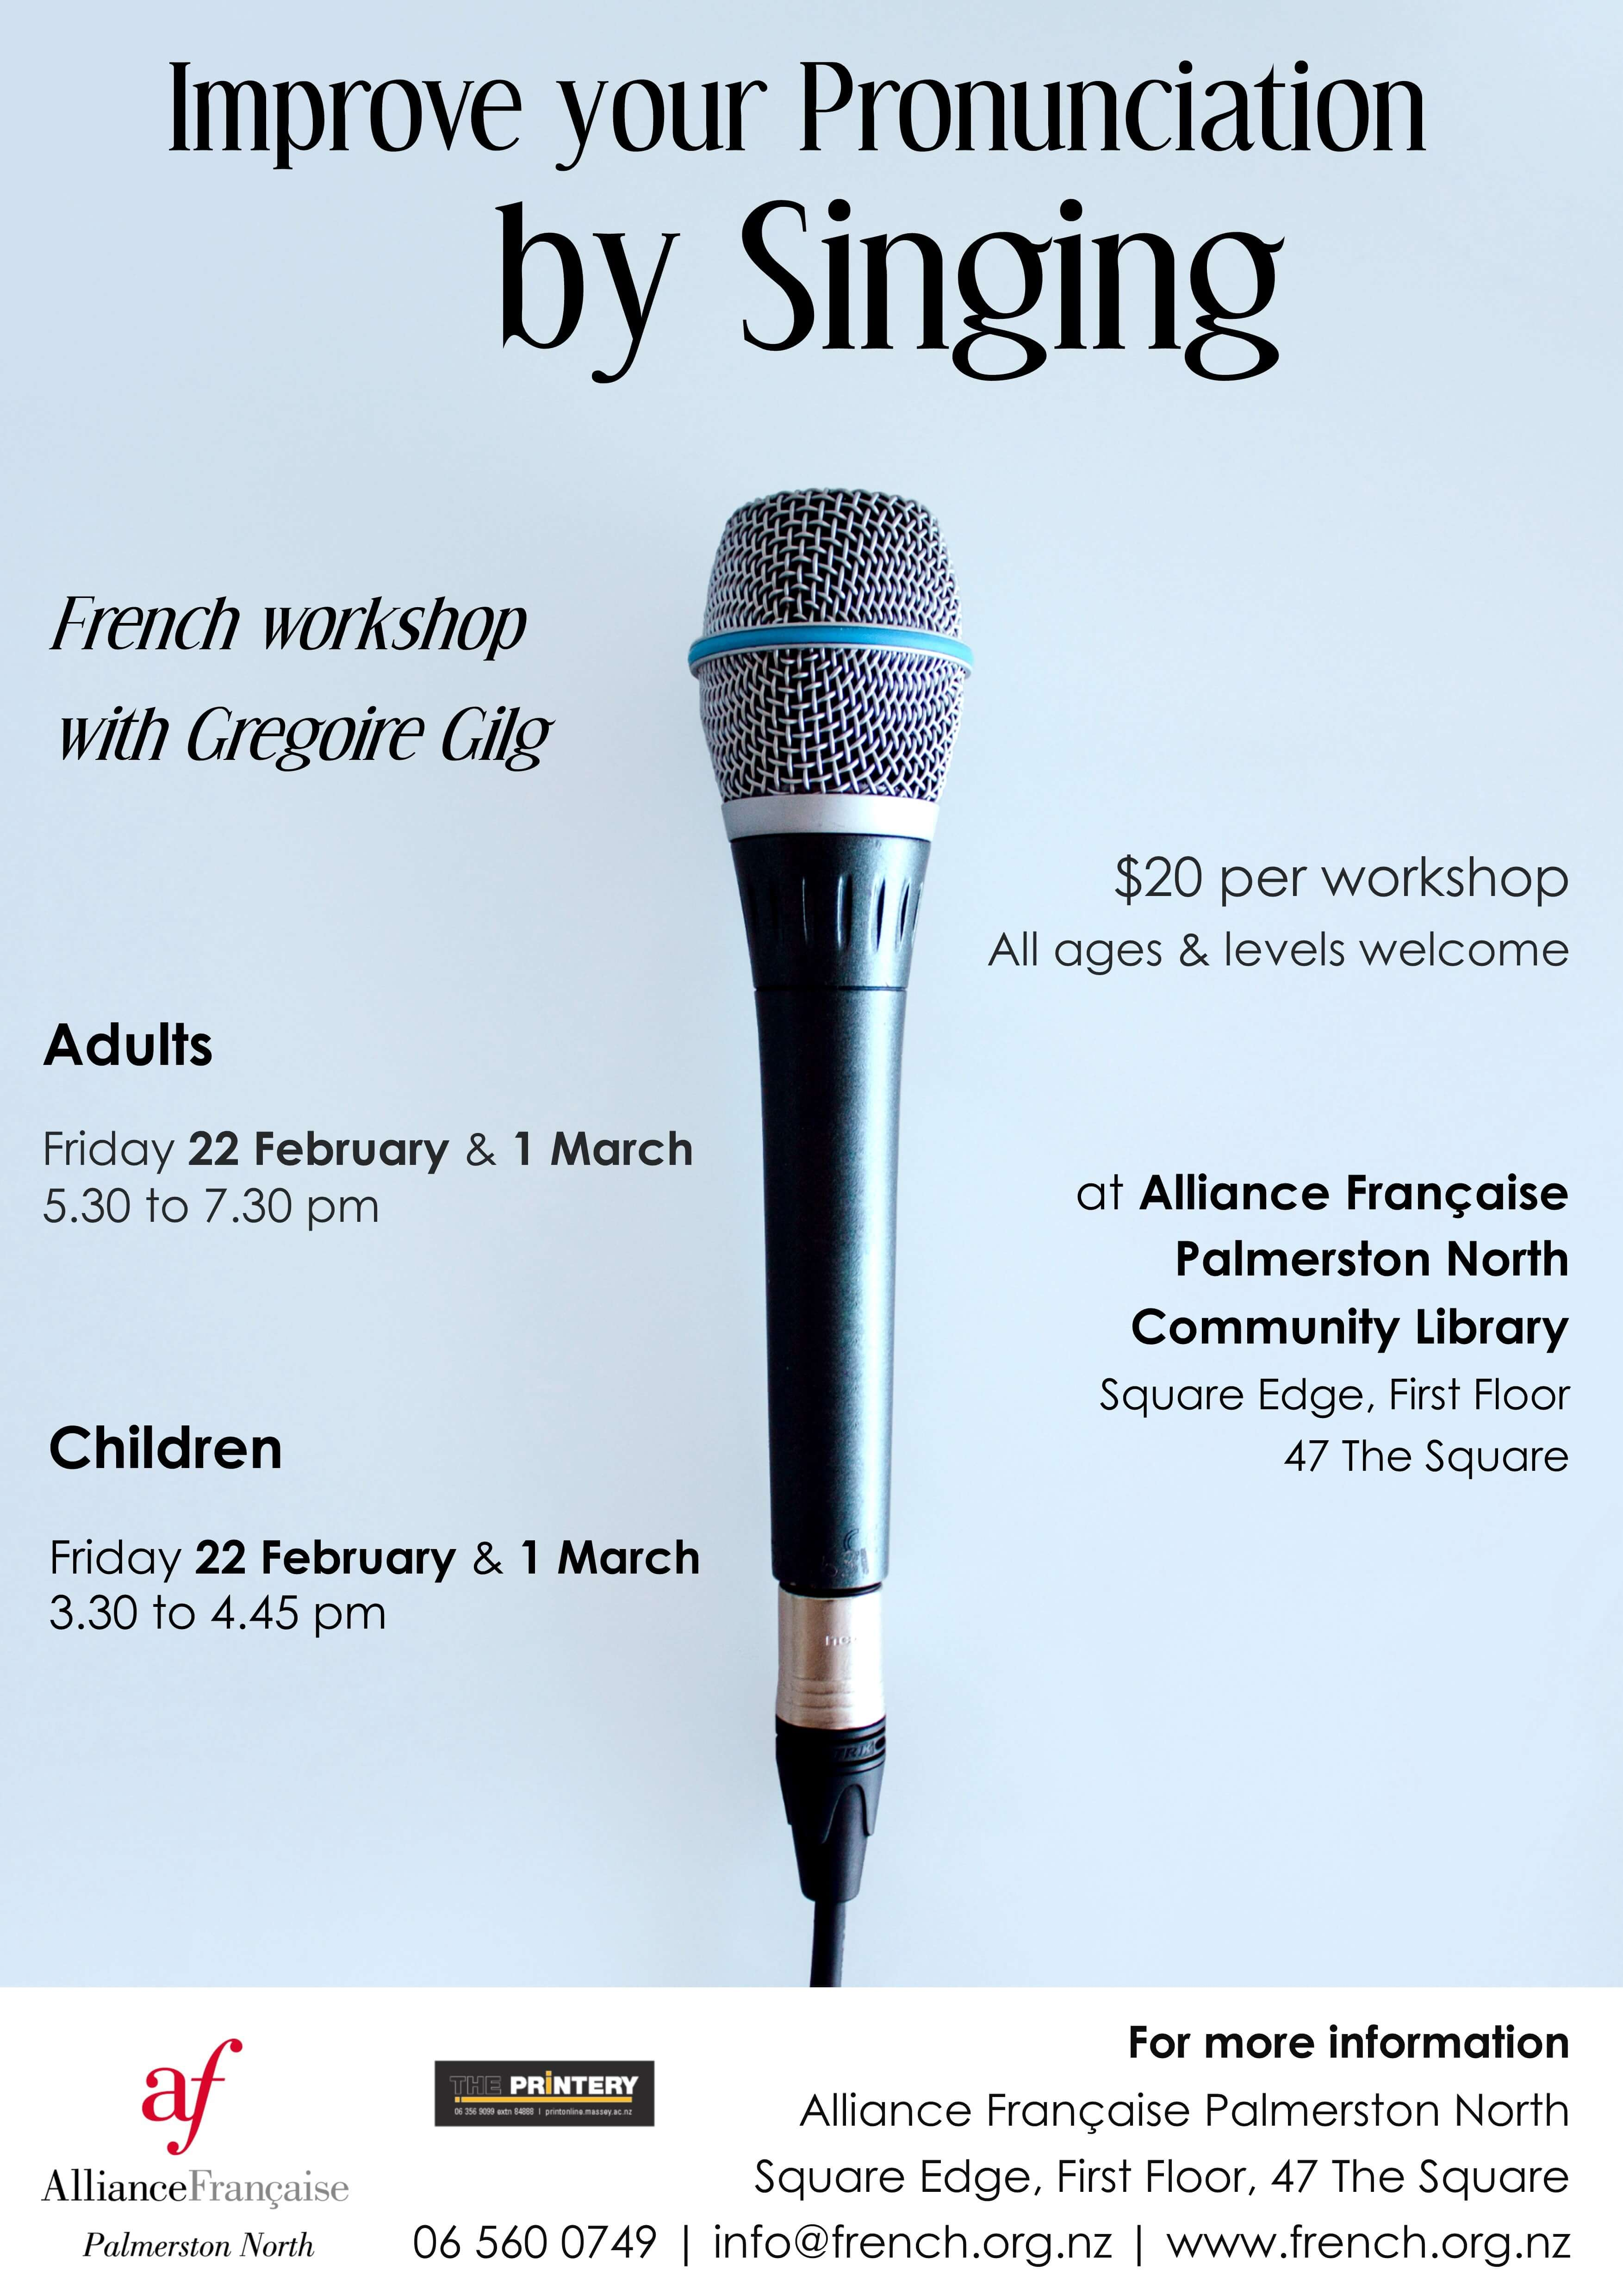 Adults Singing Workshop 22 Feb - Click to enlarge picture.